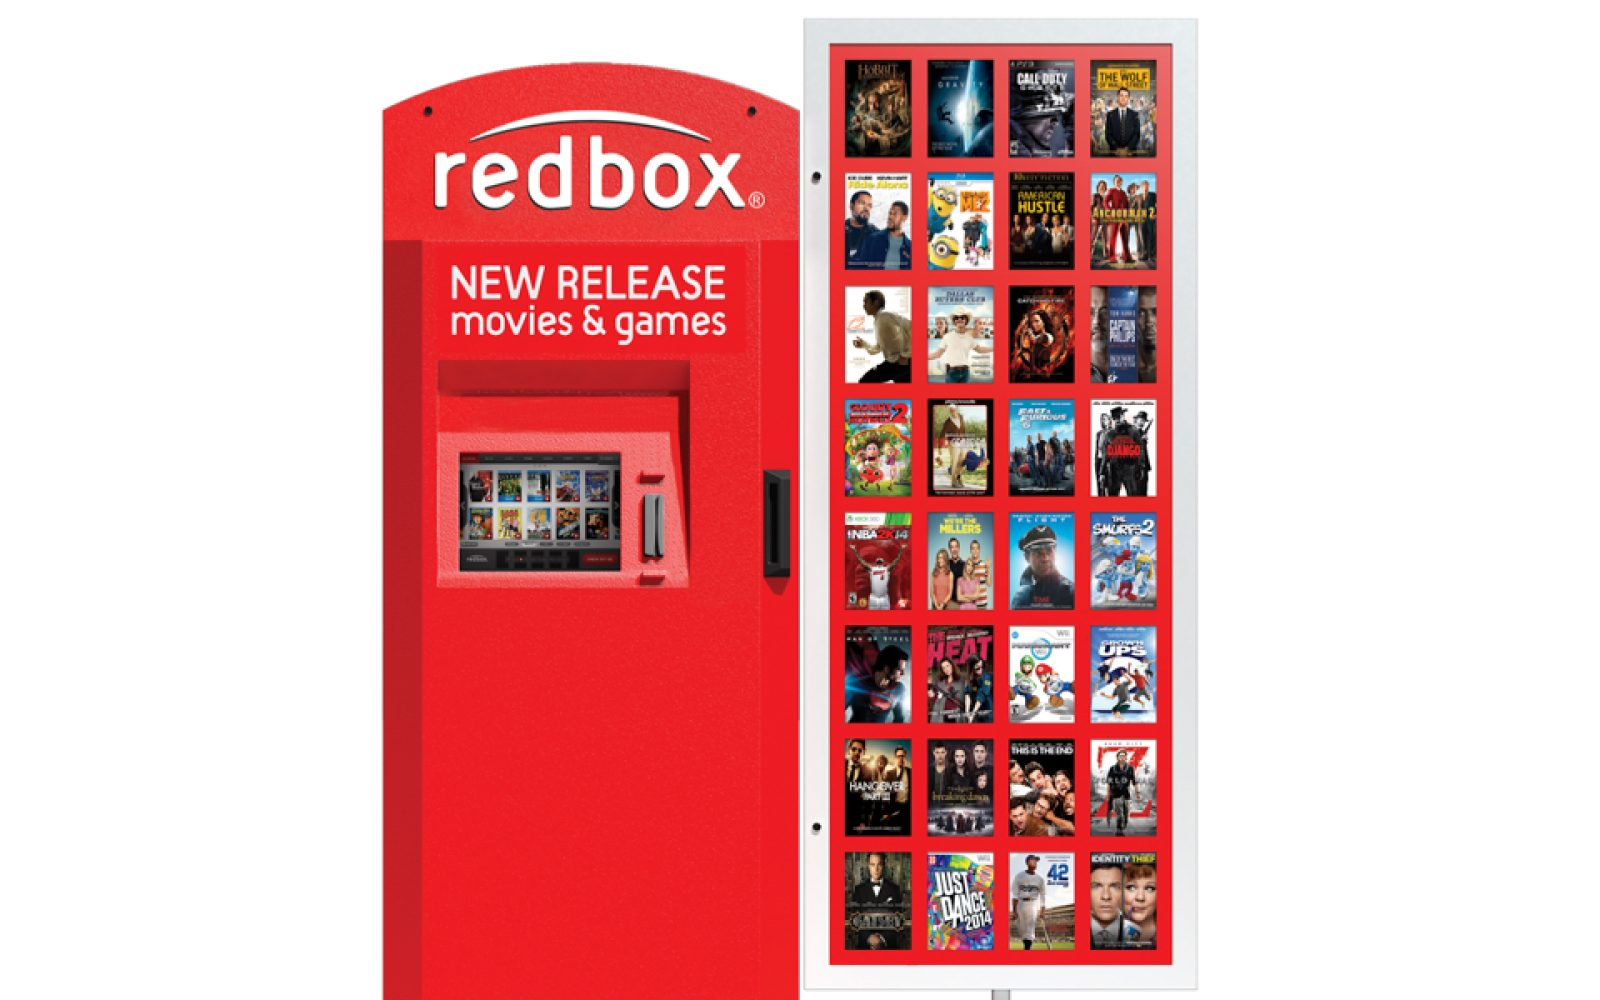 Same thing, I got a charge for RedBox is untrustworthy, I don't think I will get anything from their kiosk anymore. Yeah, it's cheap.